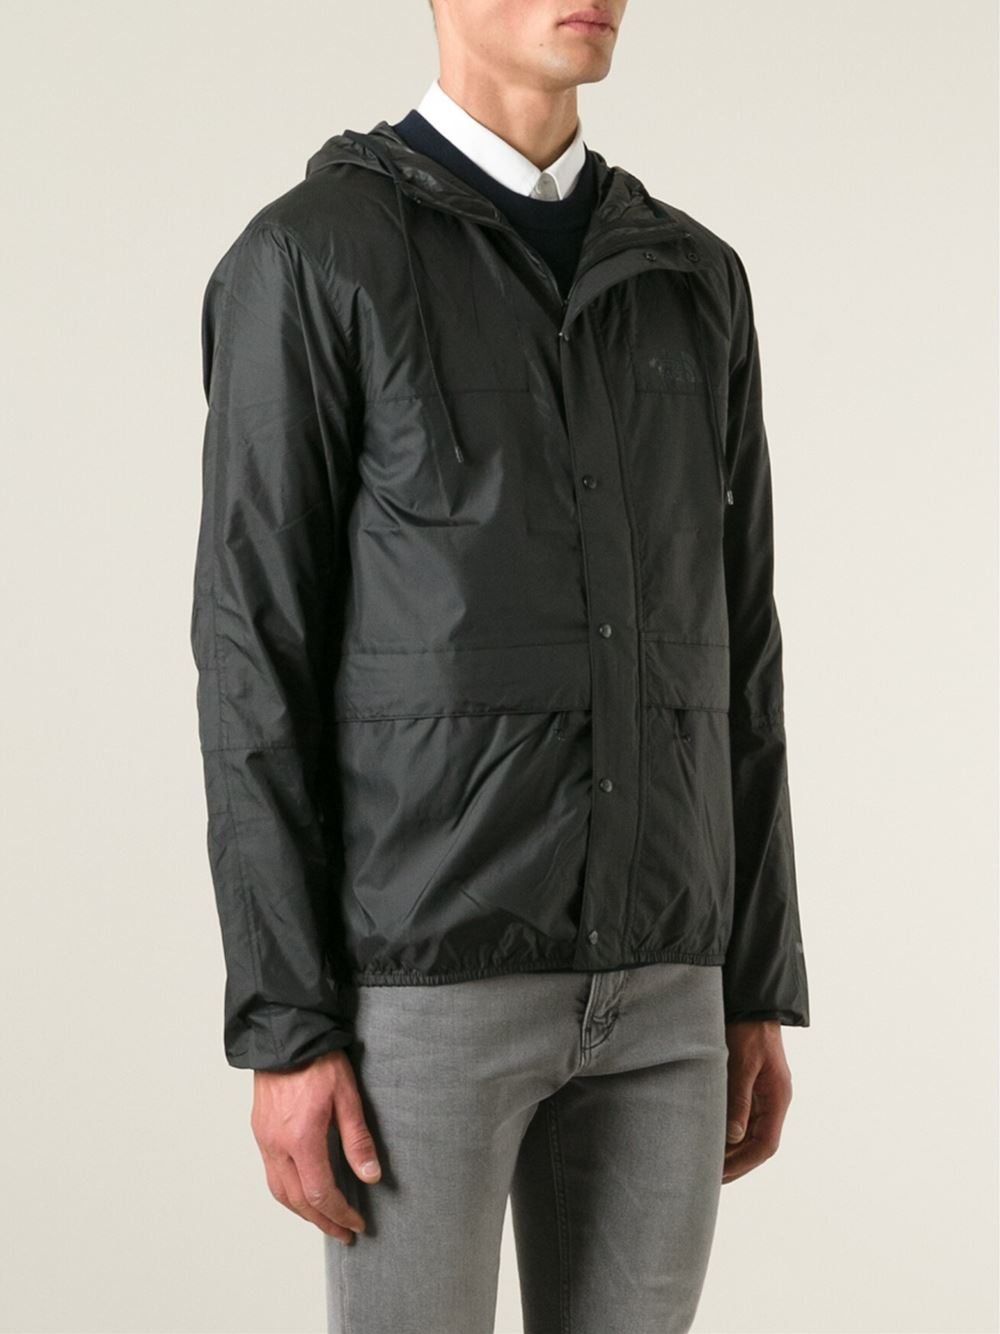 The North Face Hooded Windbreaker Jacket In Black For Men